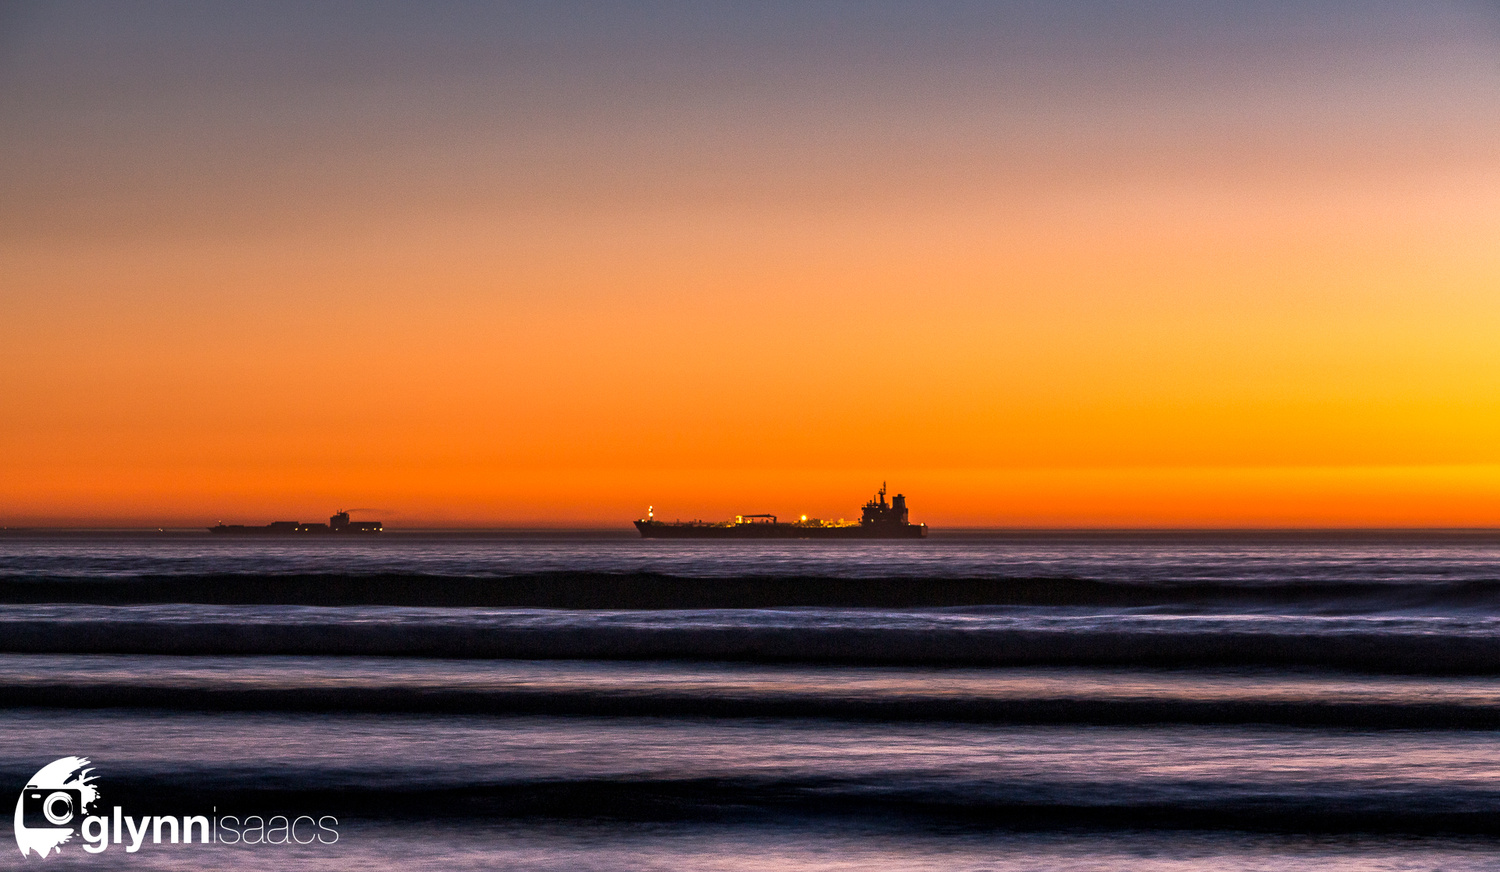 Sailing into the night by Glynn Isaacs